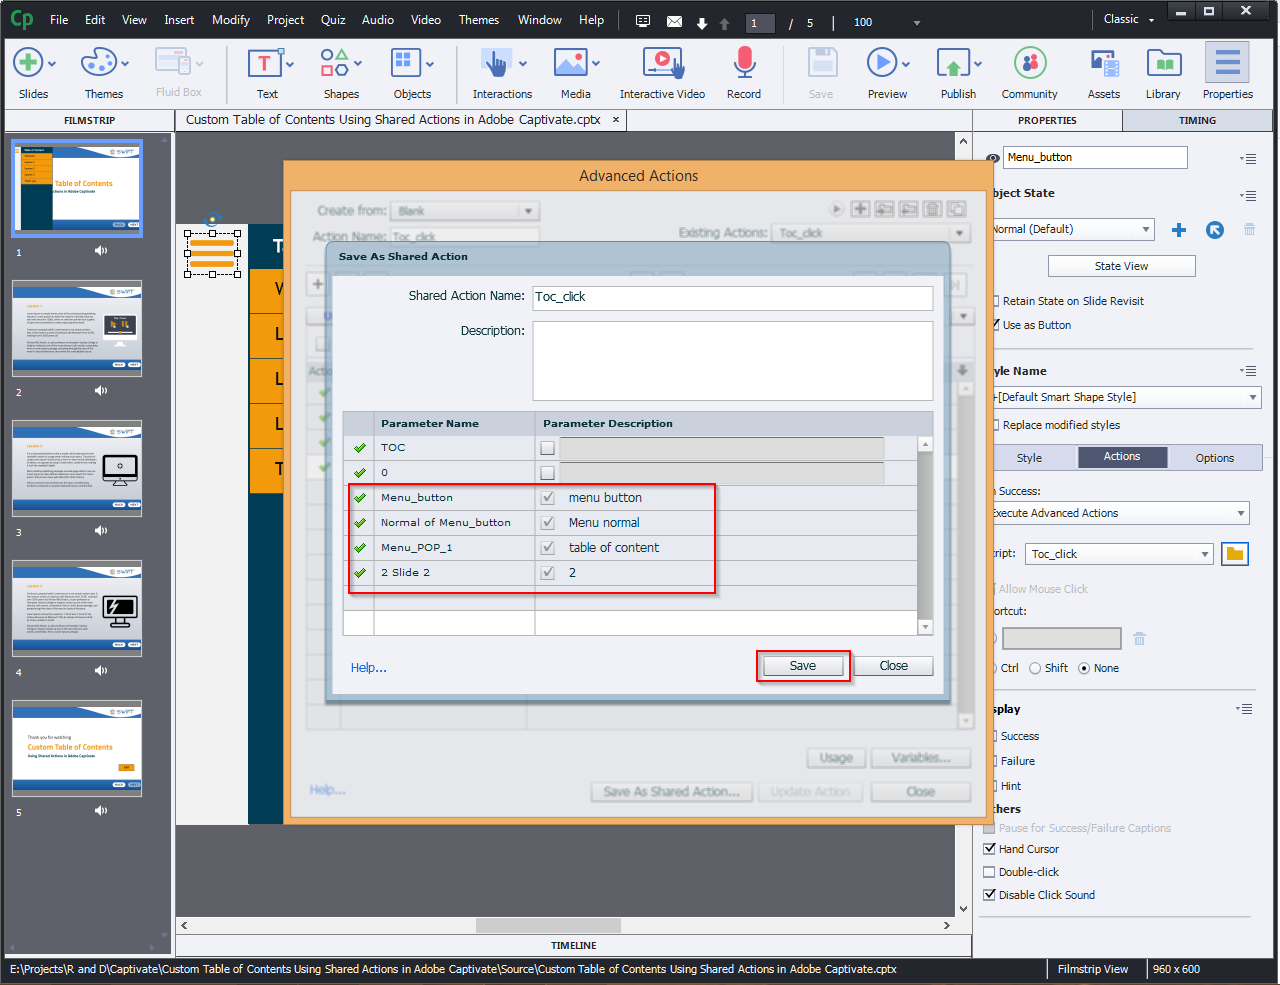 Contents Using Shared Actions in Adobe Captivate 2019 8